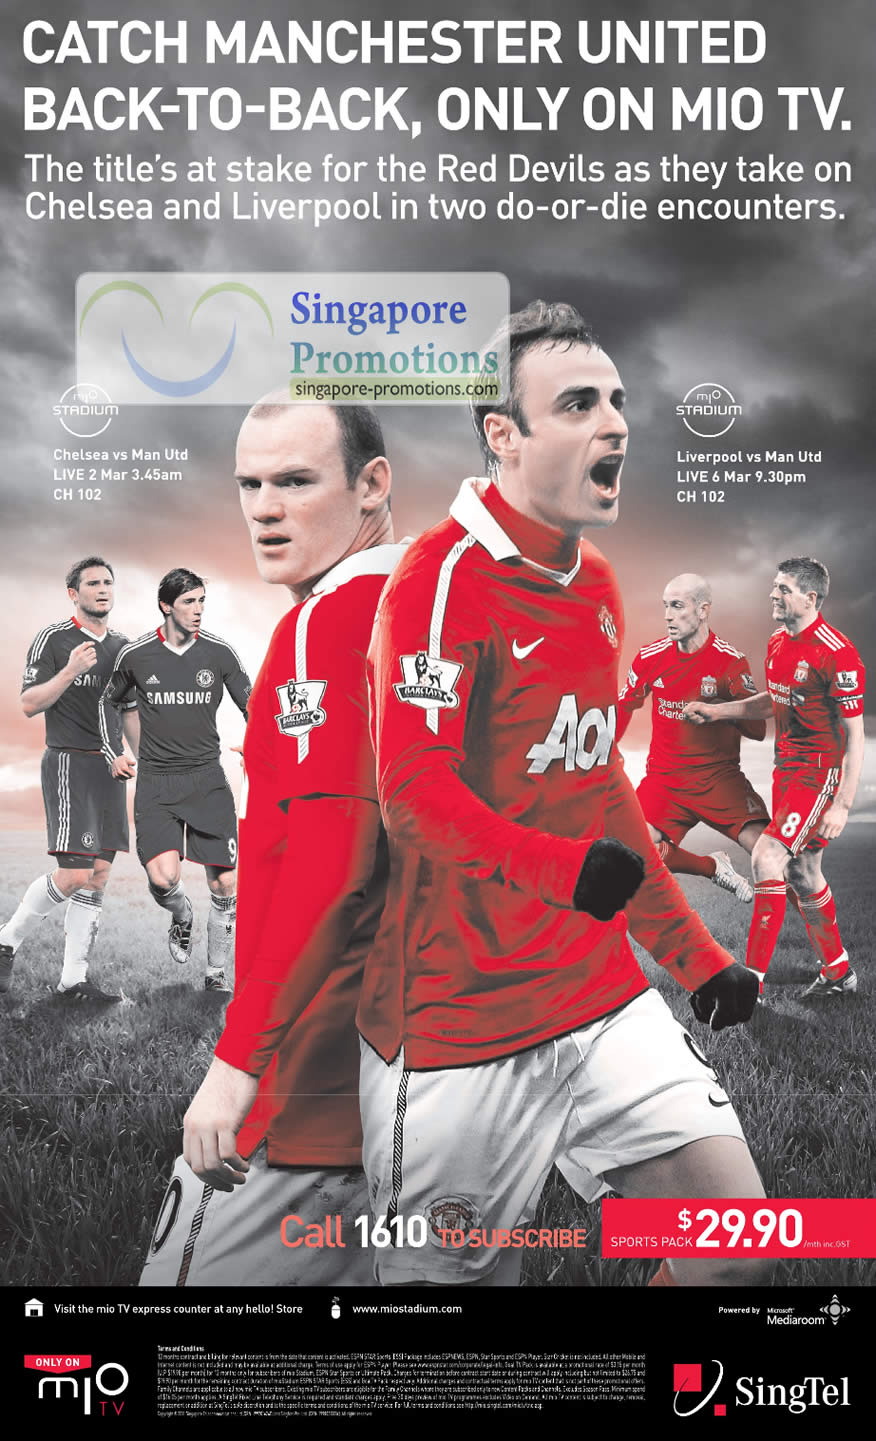 Mio TV, Manchester United, MIO STADIUM, Sports Pack Singtel Mobile ...